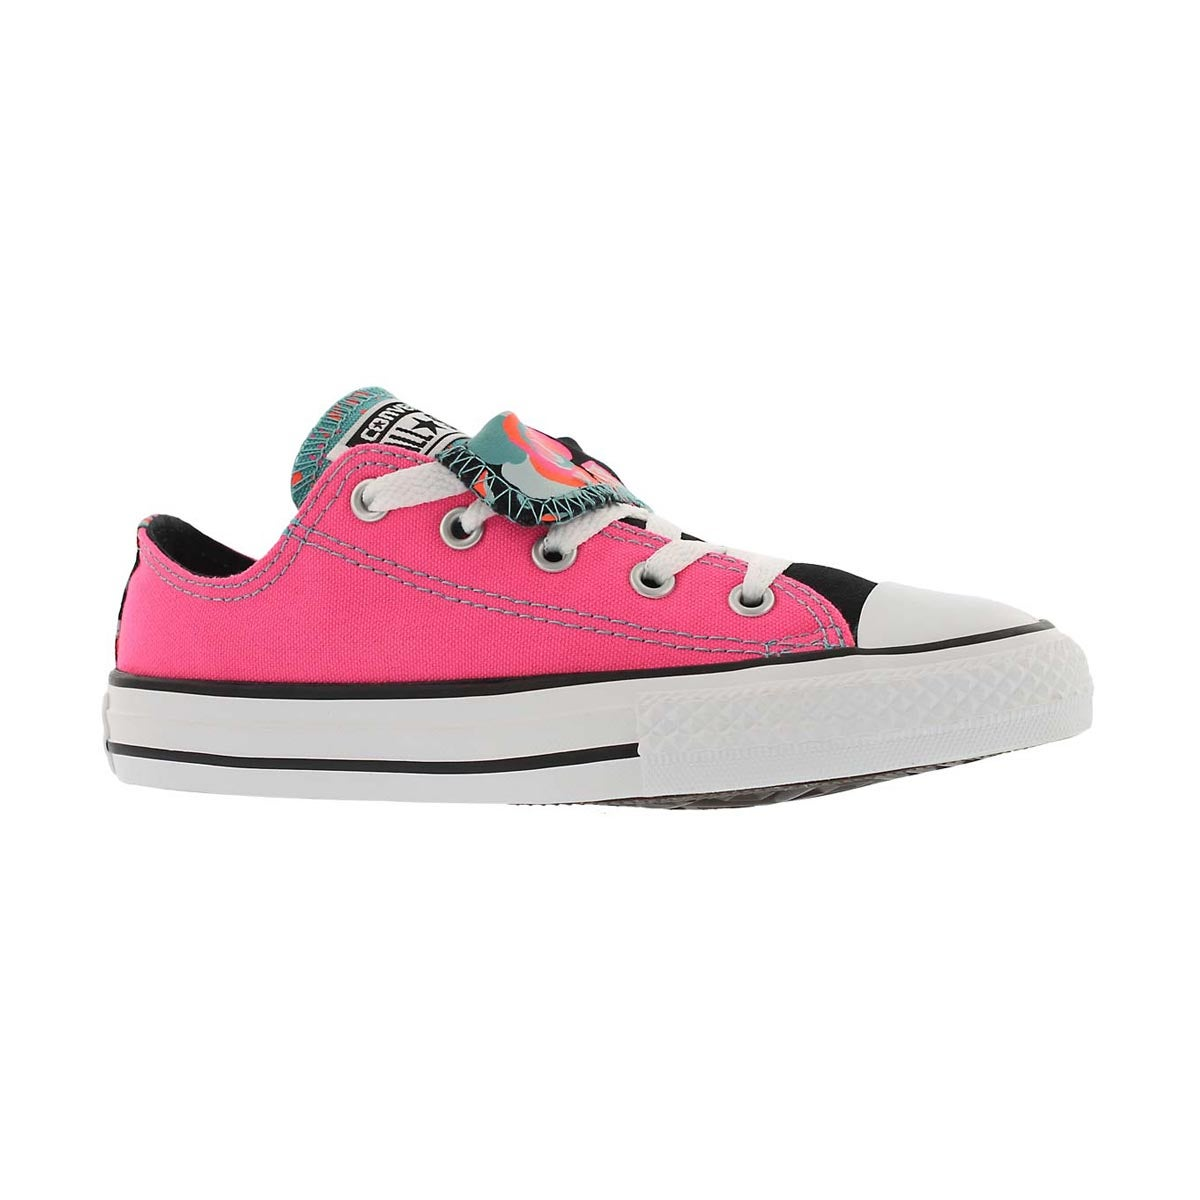 Girls' CT ALL STAR DOUBLE TONGUE pnk/wht sneakers